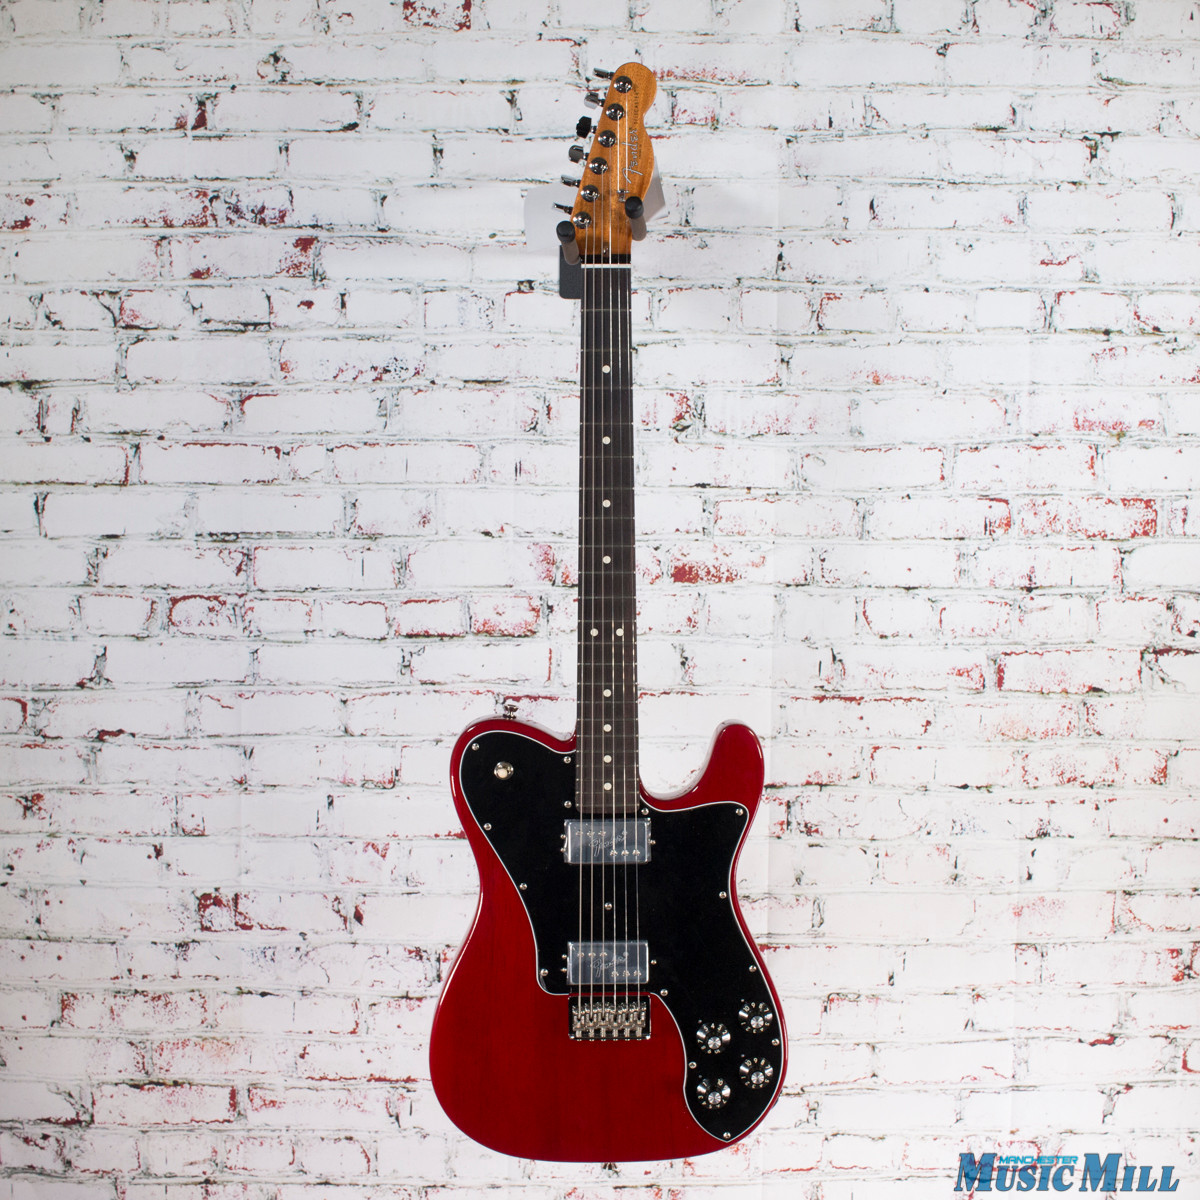 Fender Limited Exotic Series American Professional Mahogany Telecaster Deluxe Shawbucker Crimson Red